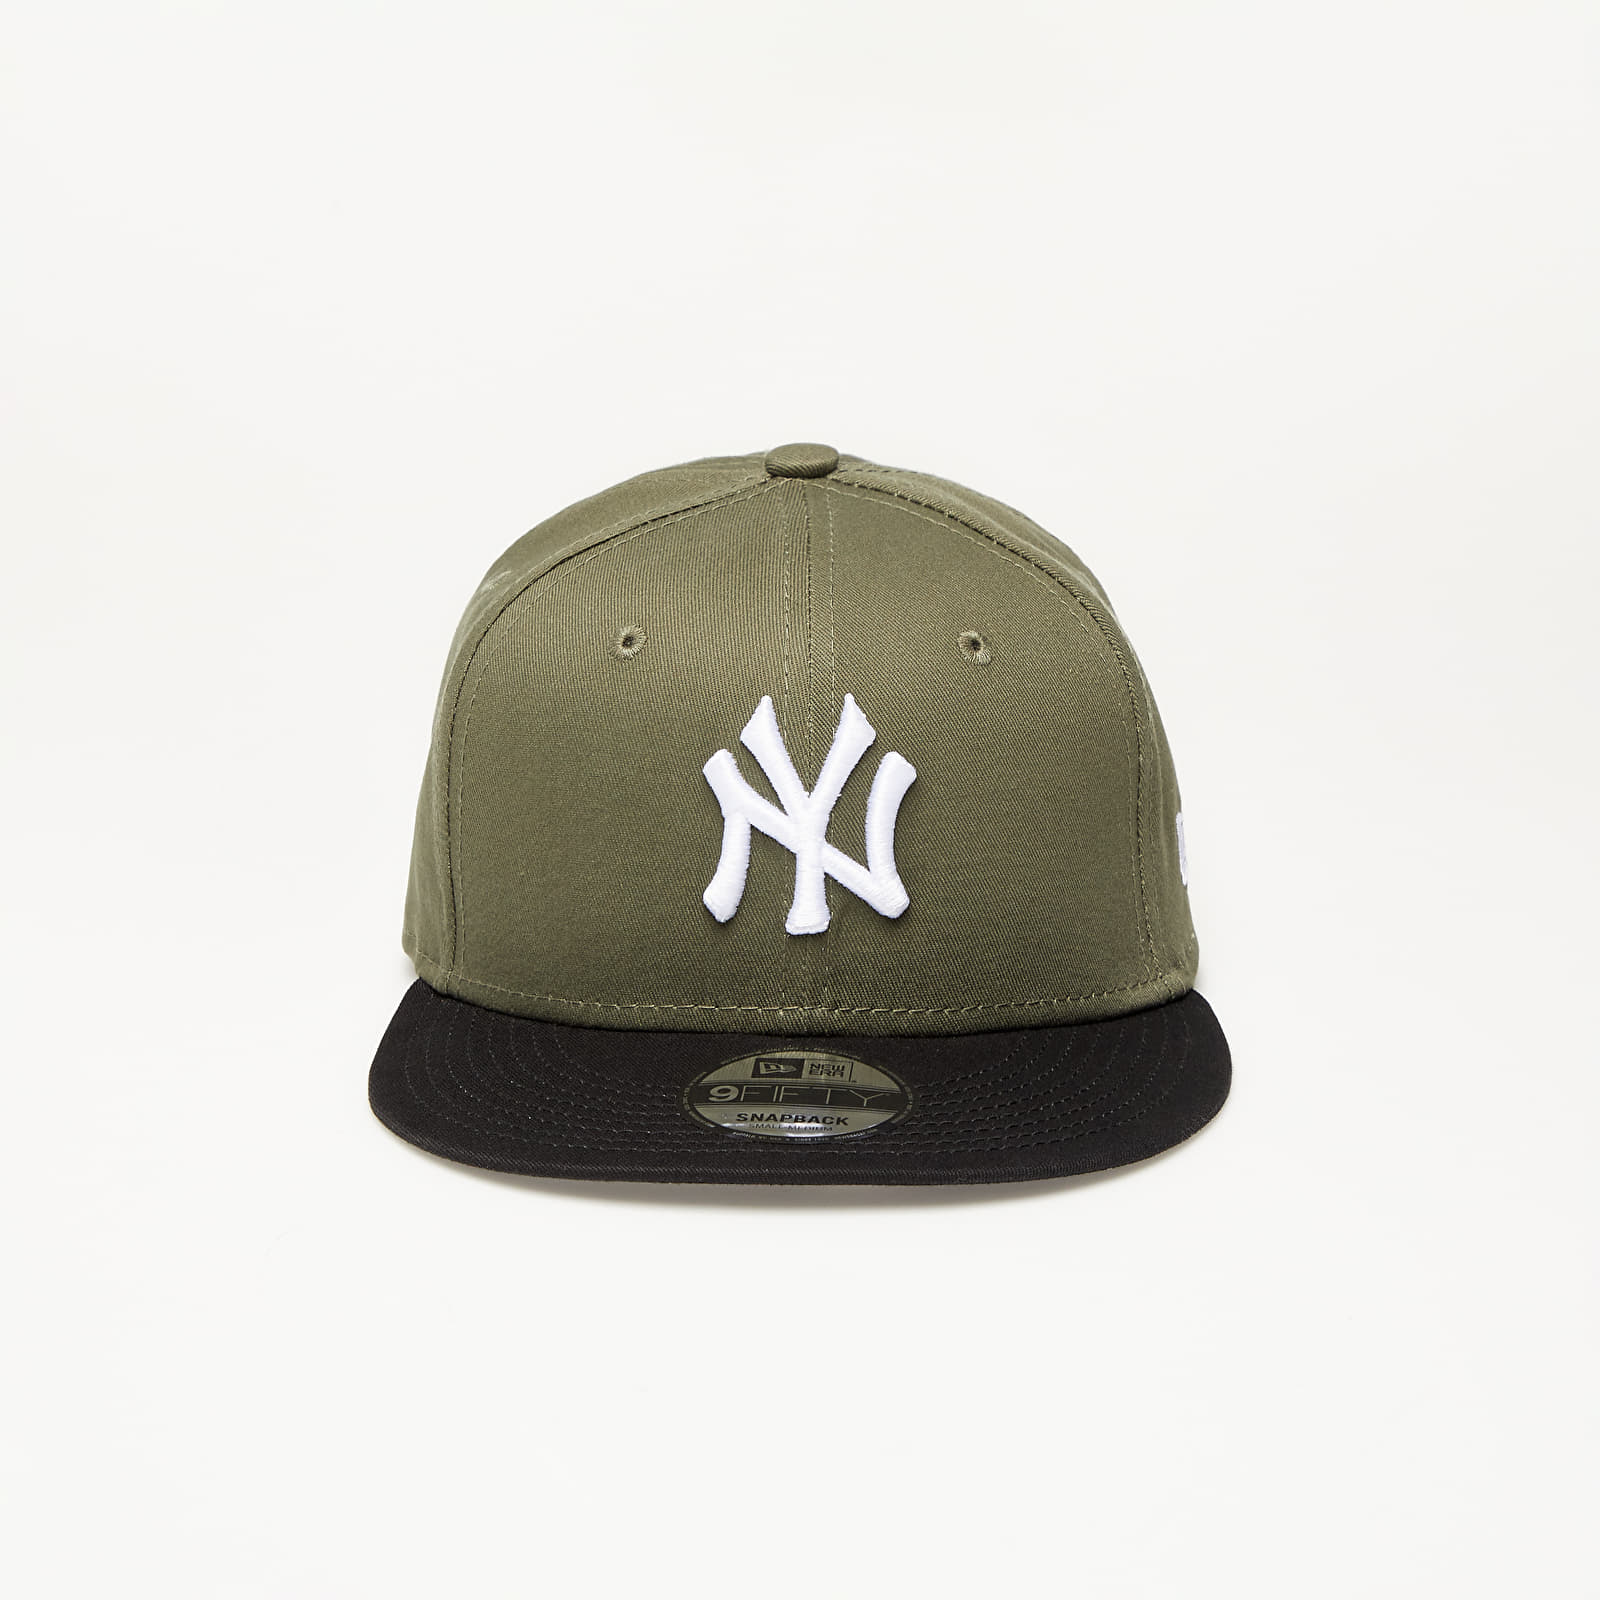 Caps New Era 9Fifty Colour Block New York Yankees Cap Black